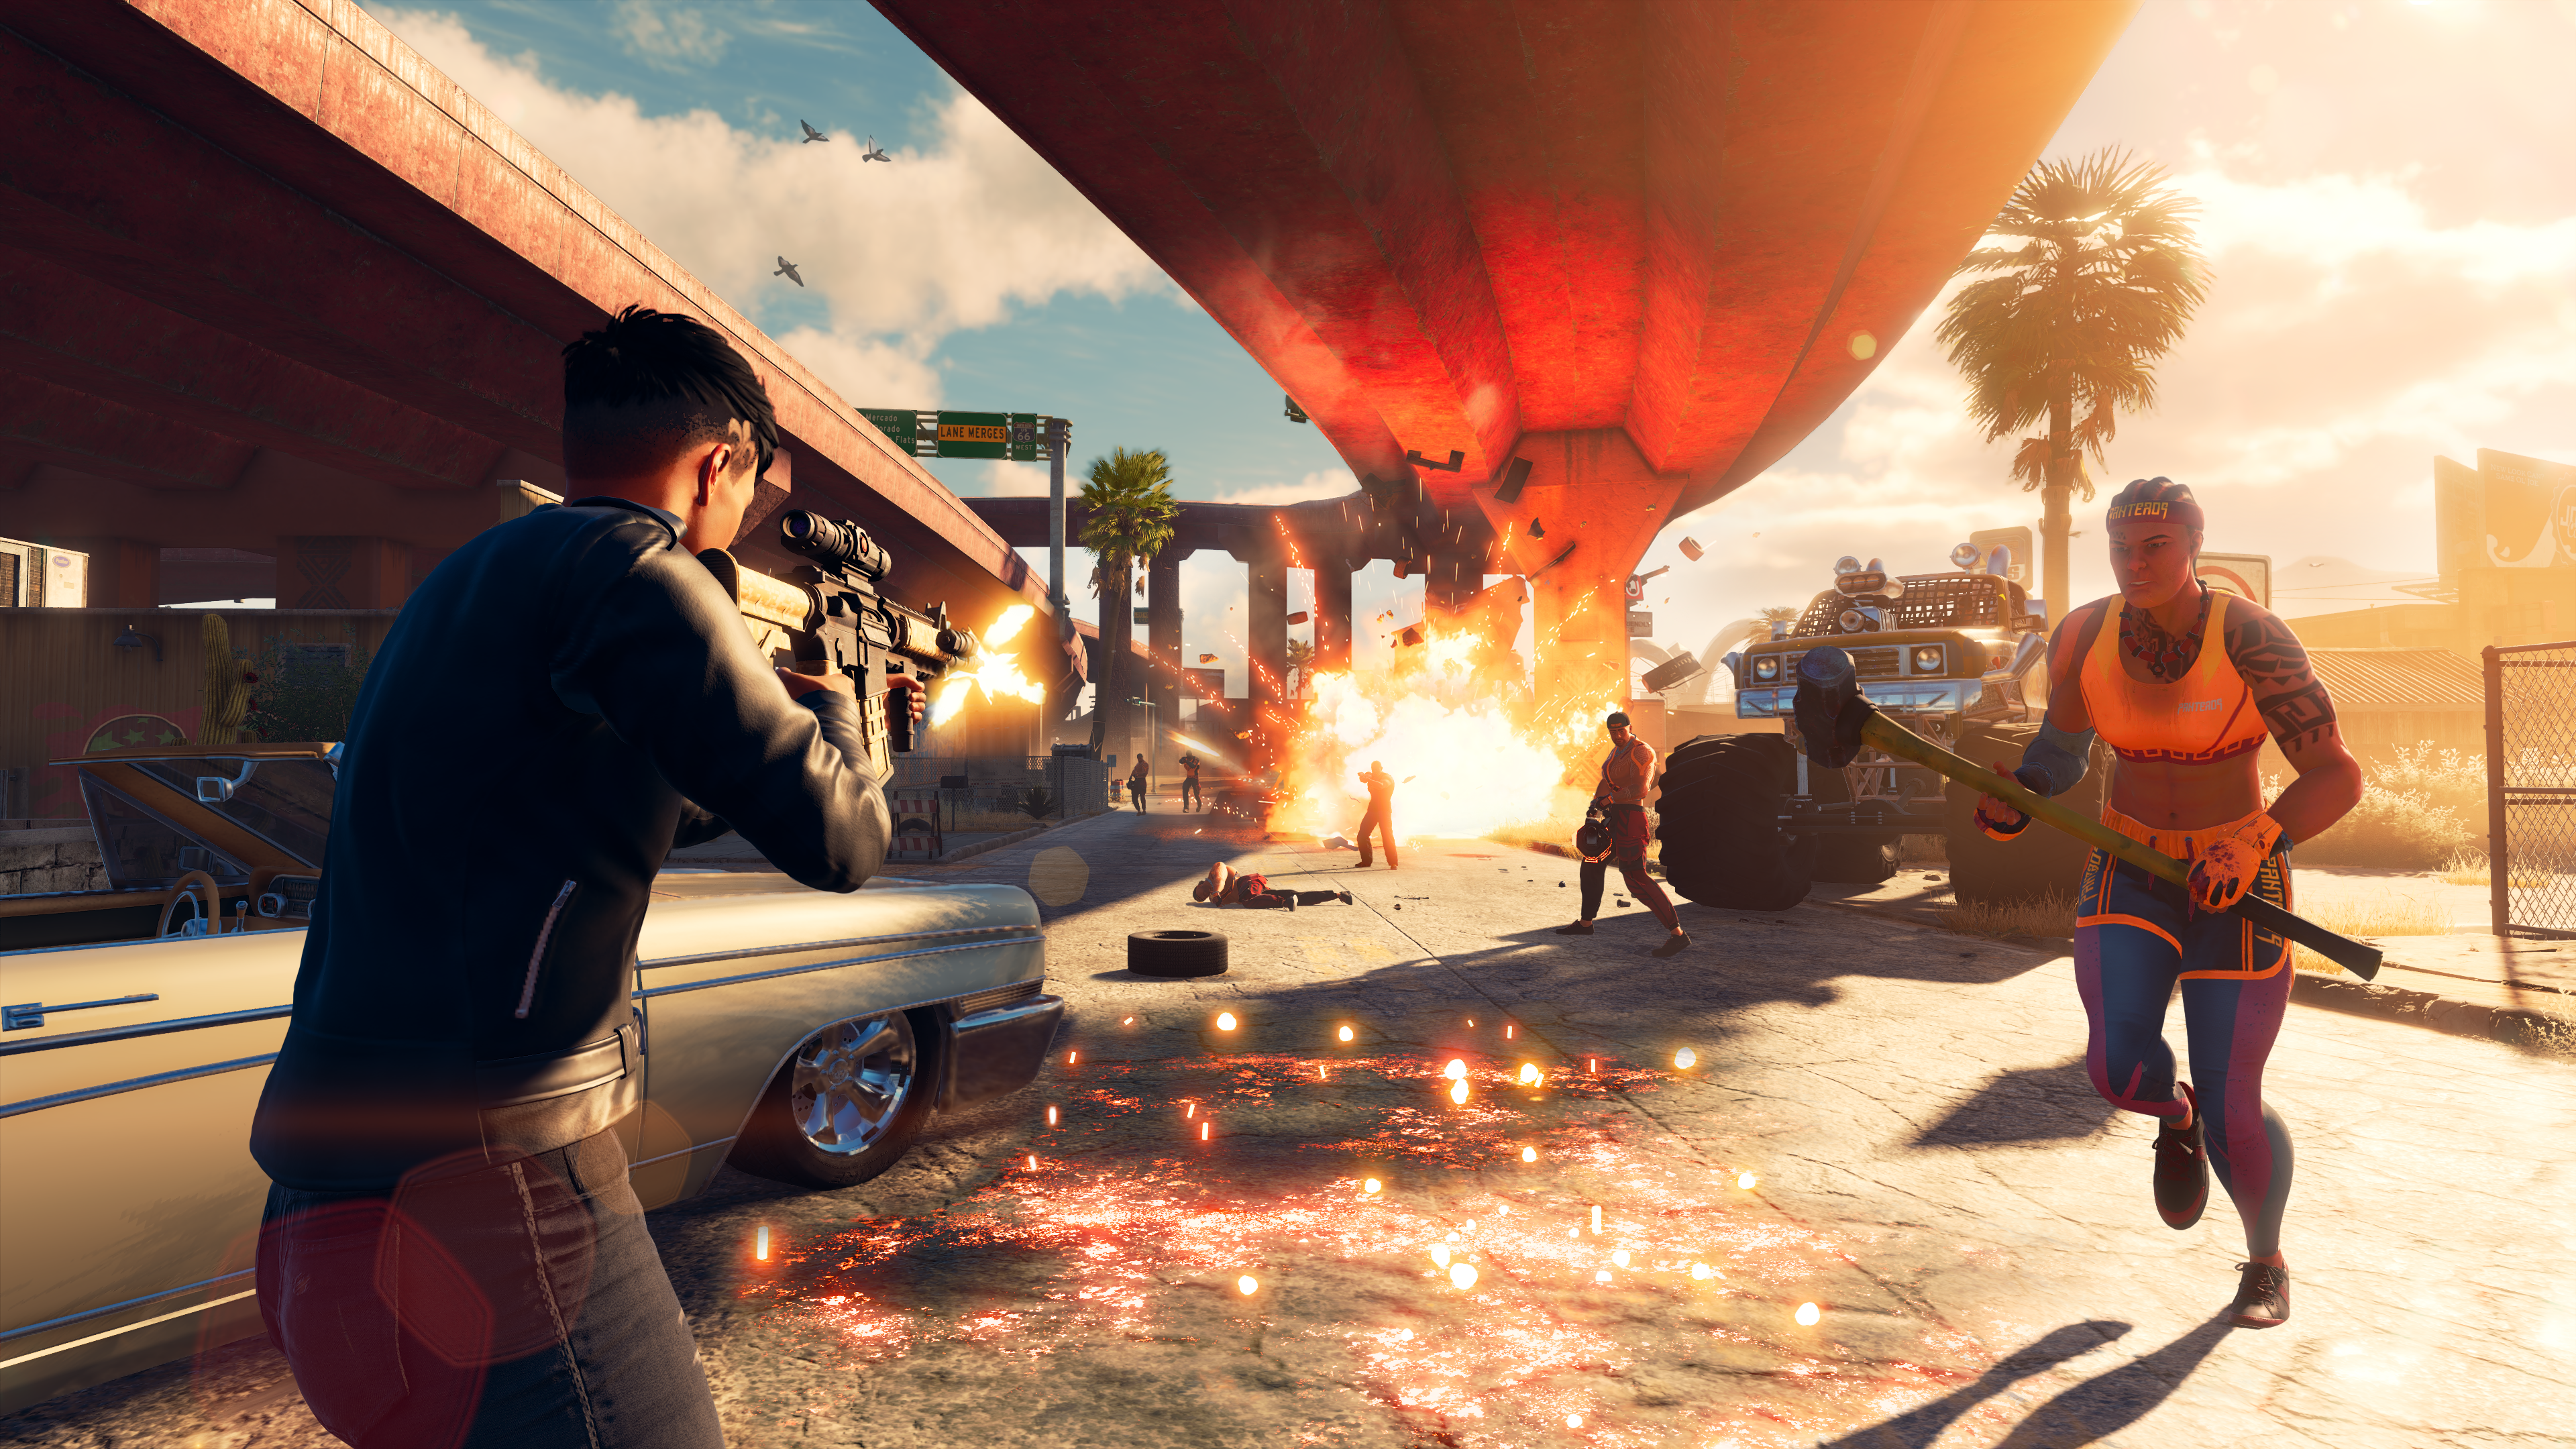 If shooting in Saints Row is fun, the game might win a lot of my sympathy